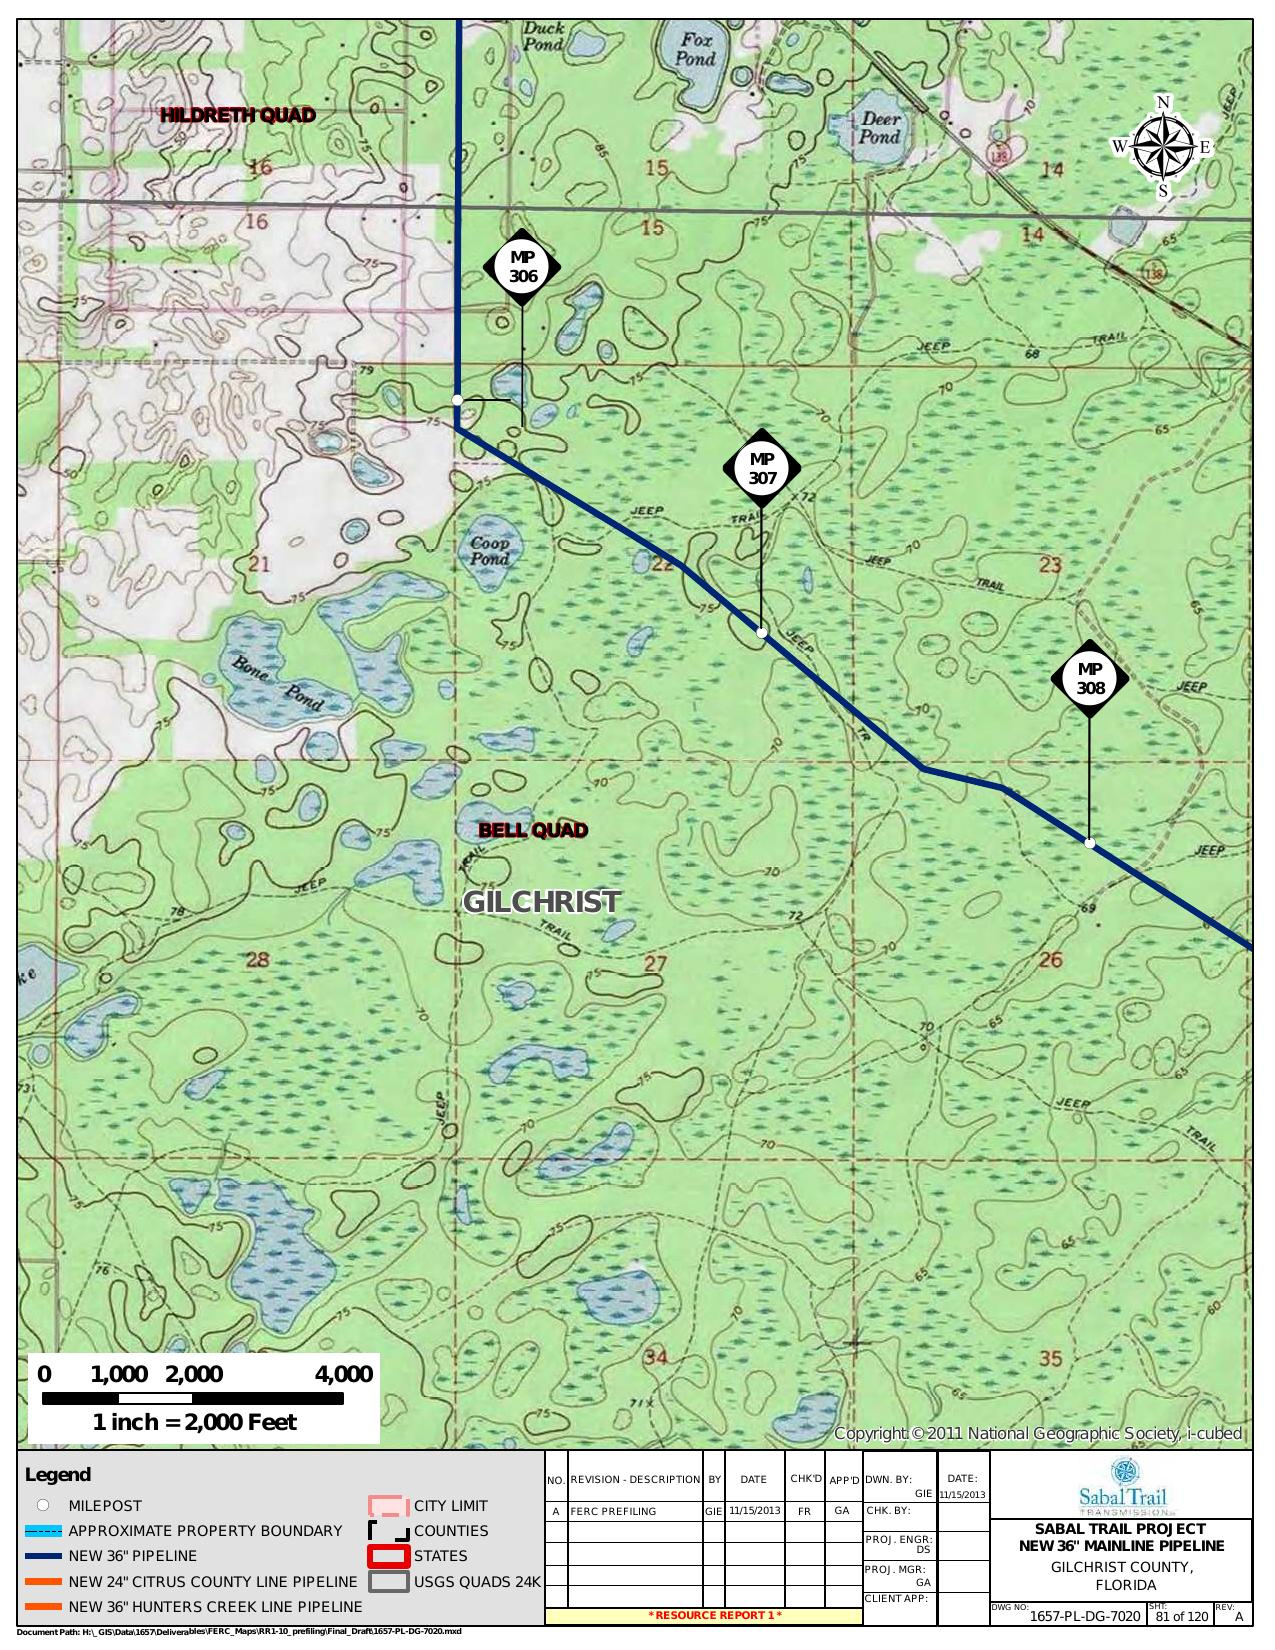 Bell Quad, Gilchrist County, Florida, in General Project Description, by SpectraBusters, for FERC Docket No. PF14-1-000, 15 November 2013, converted by SpectraBusters